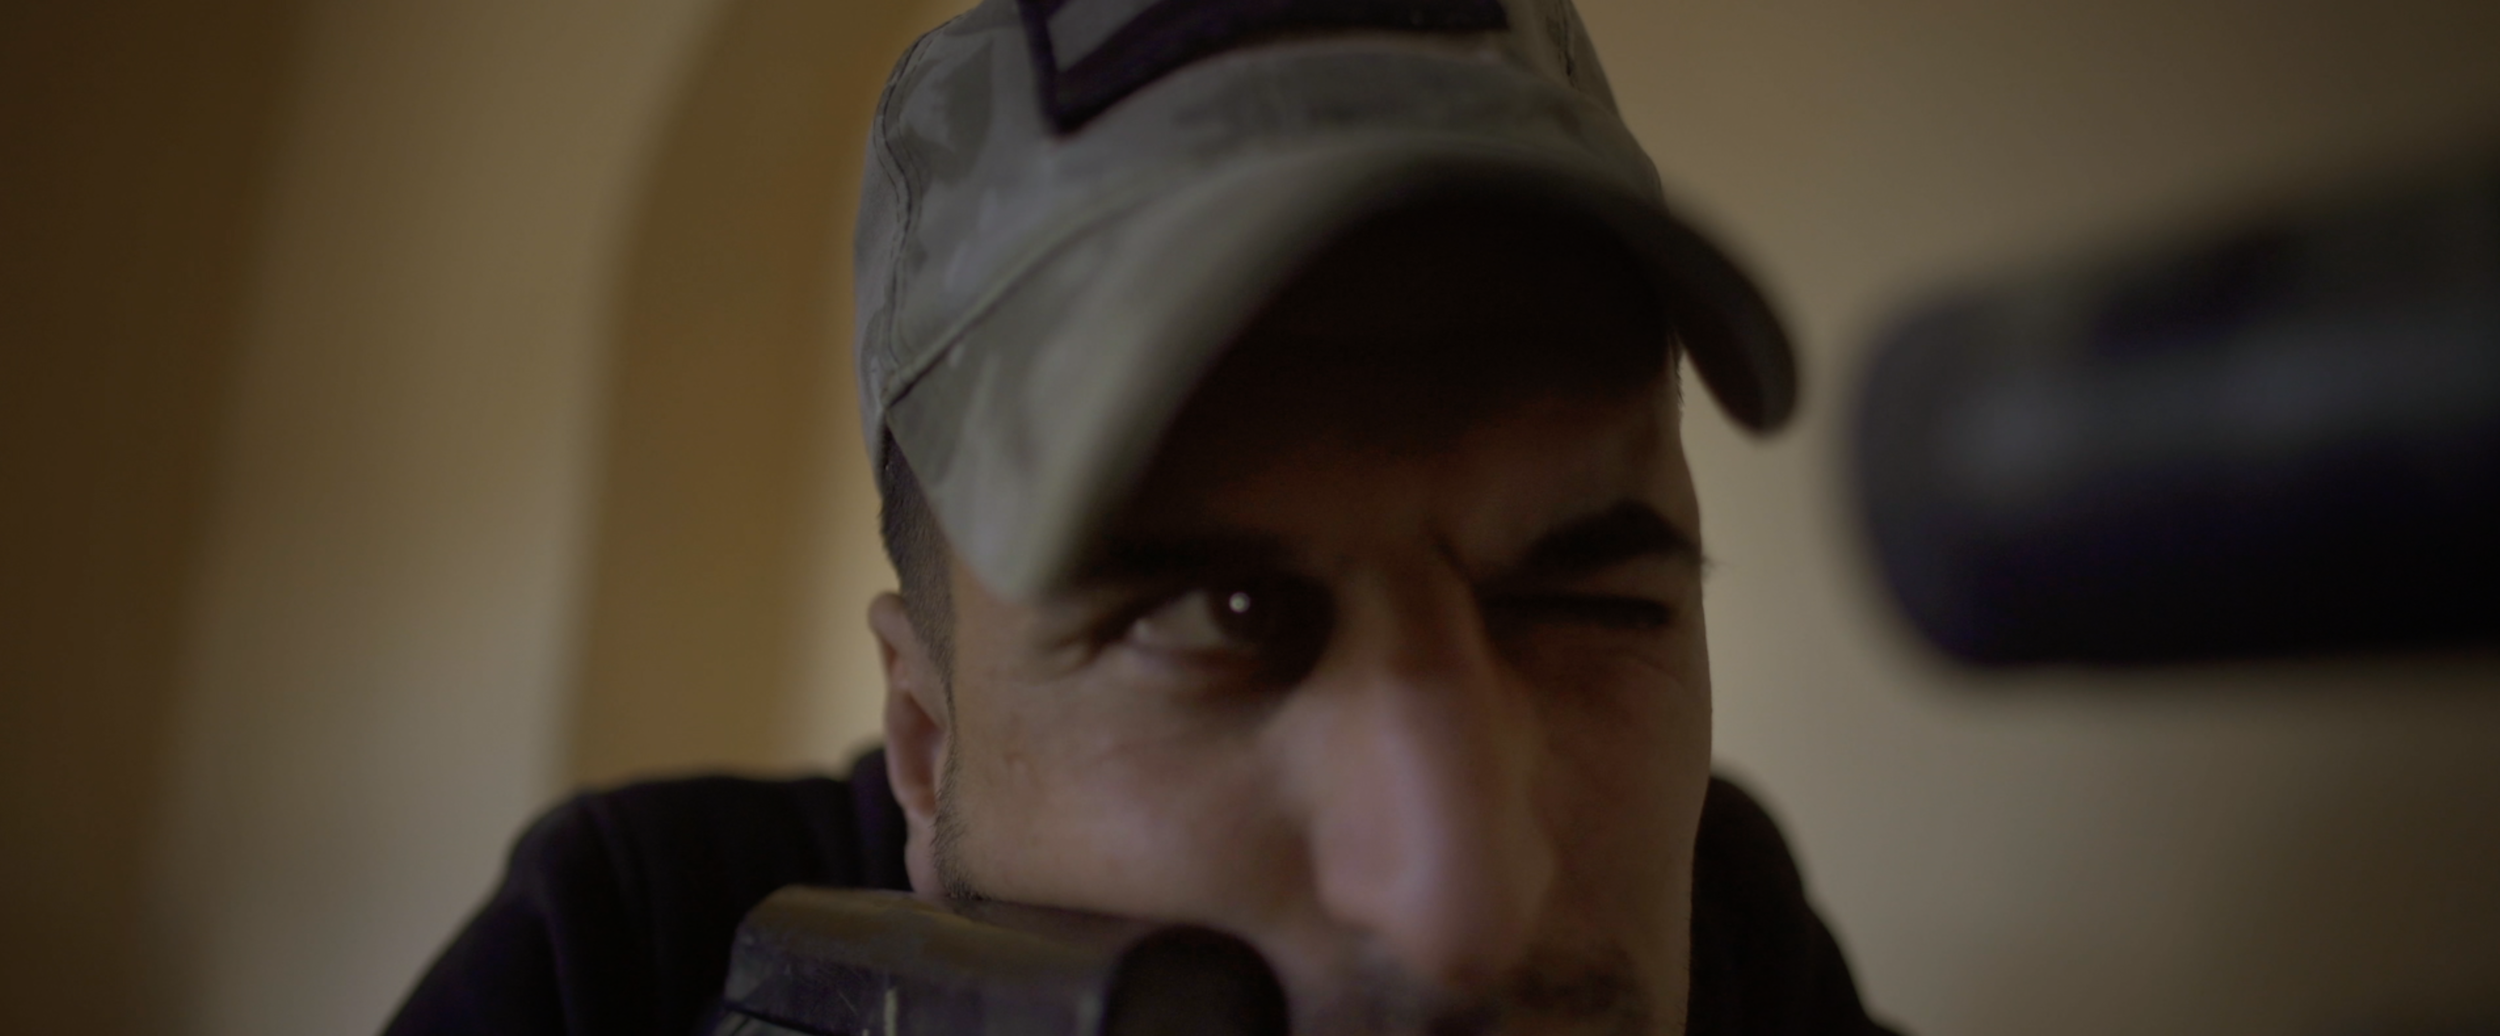 Soldier pointing rifle, looking through peephole.png